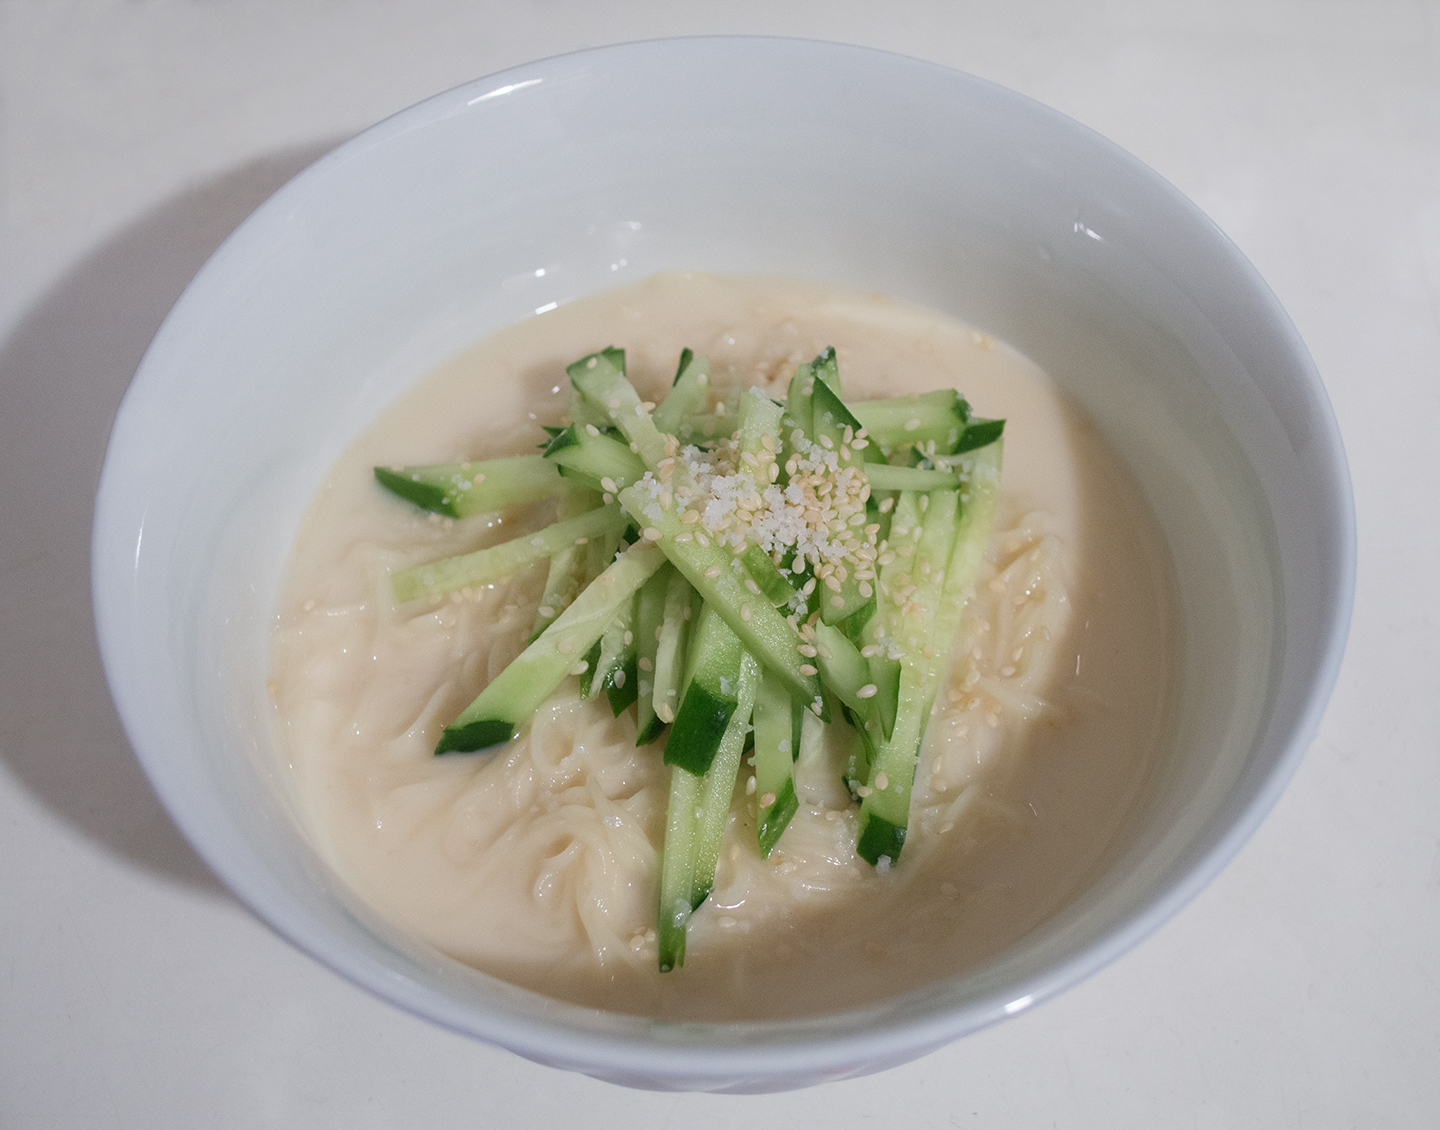 Kong Guksu (콩국수) - Cold Noodles in Soy Milk with Cucumber